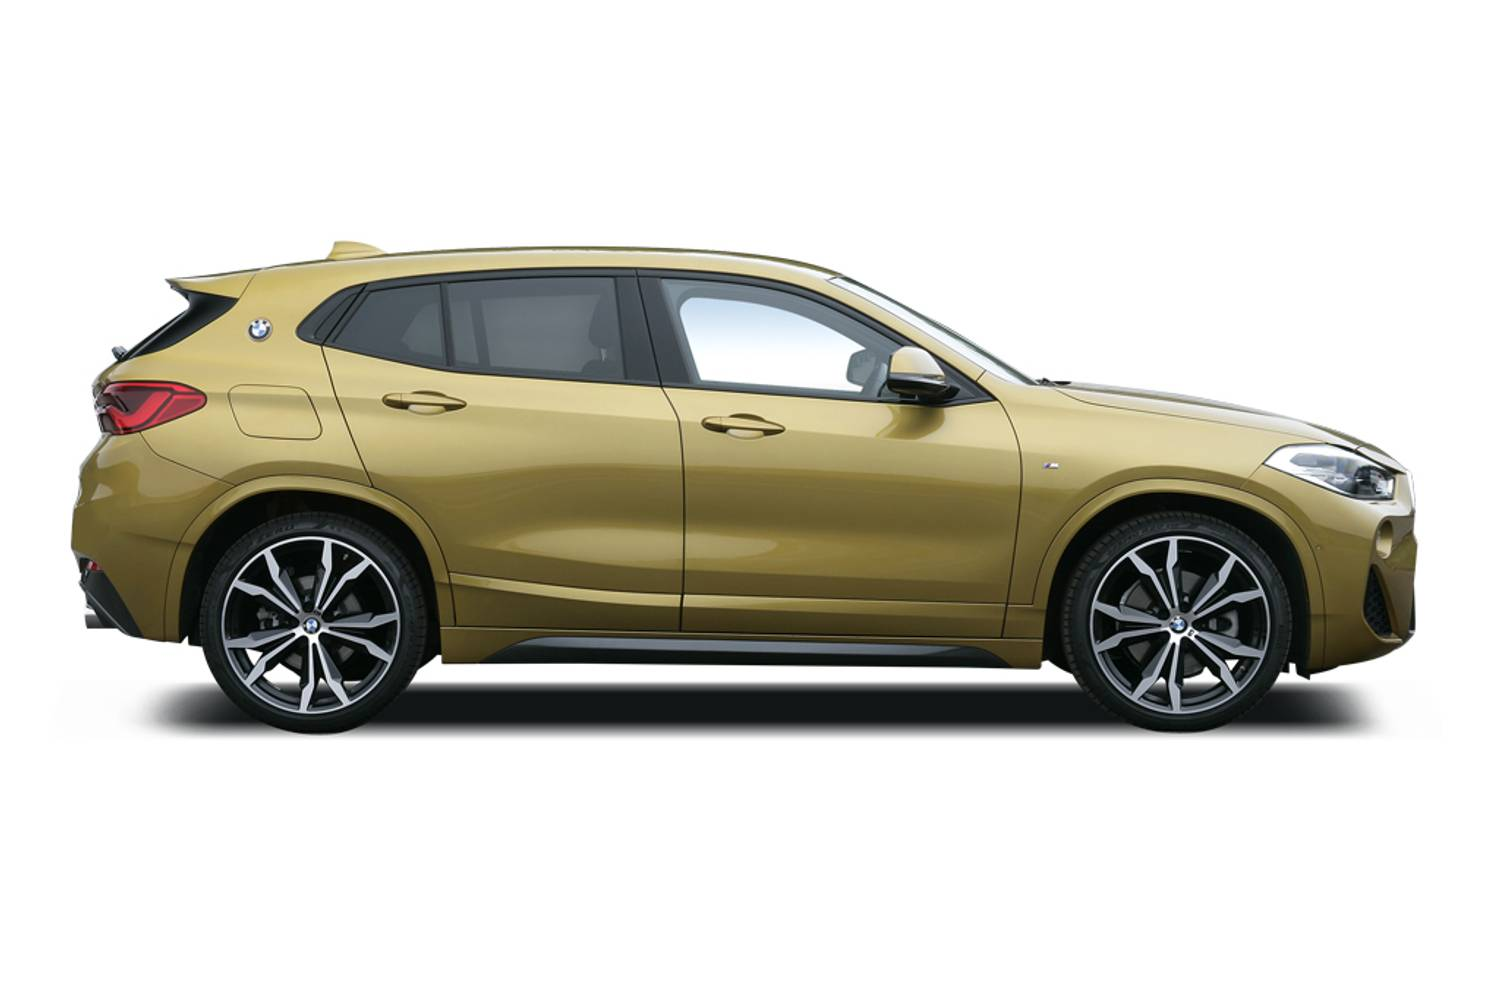 BMW X2 Hatchback 5dr Profile